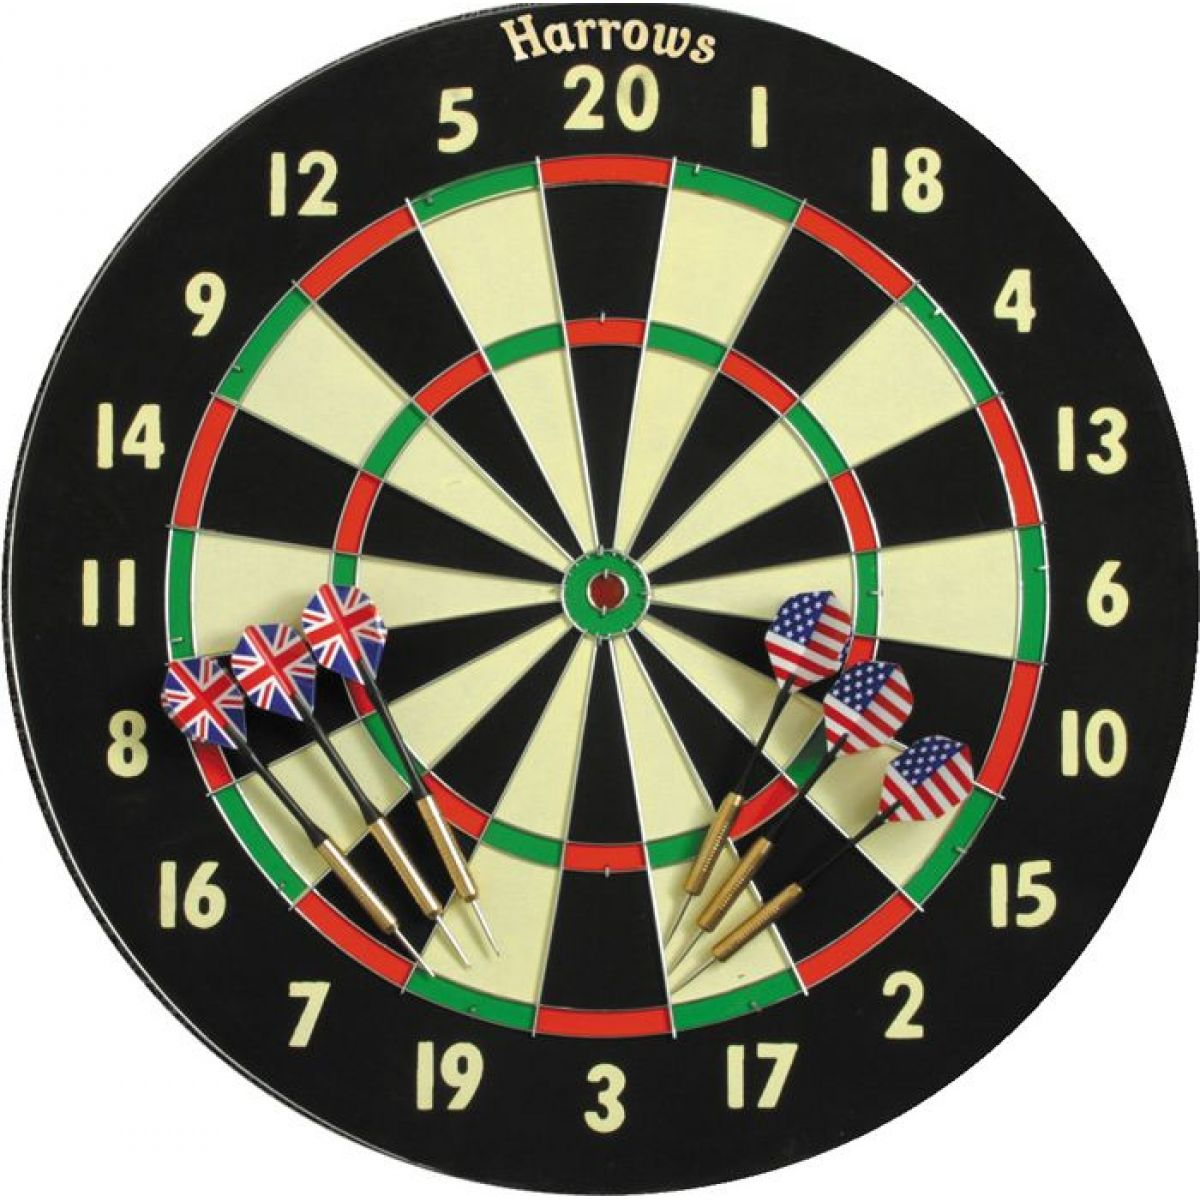 Harrows Papírový terč Family Darts Game